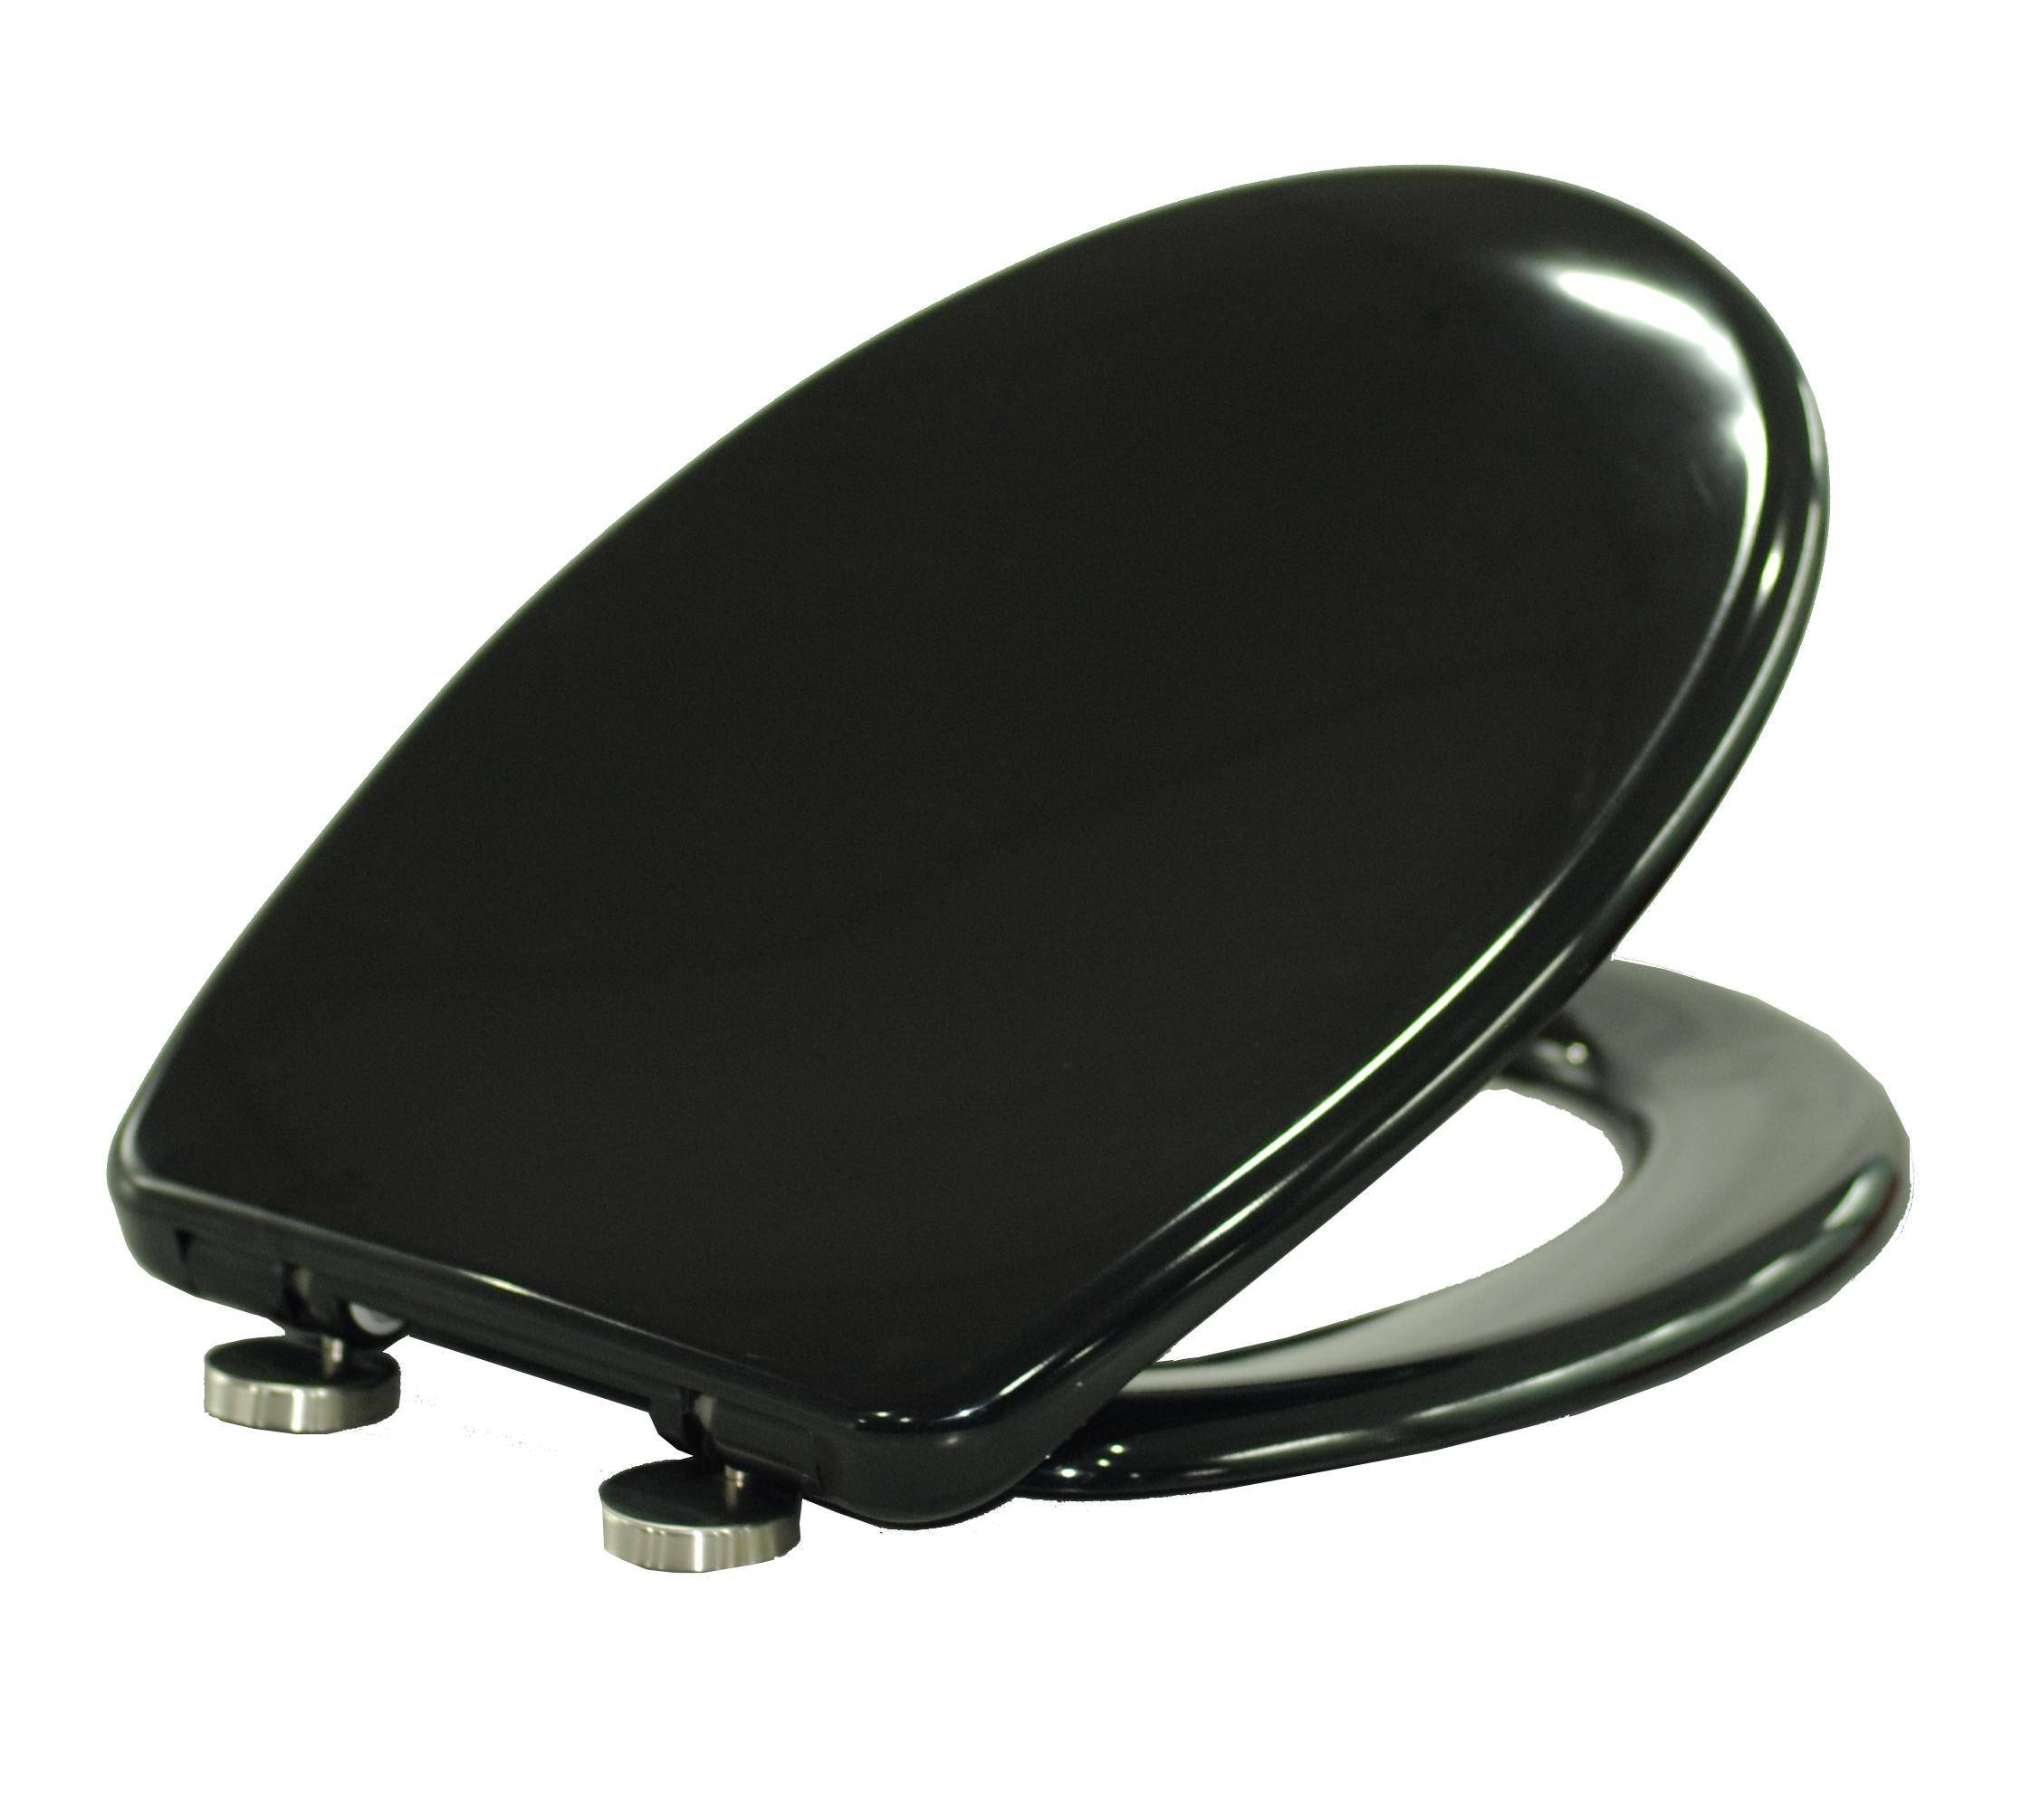 Soft close and Quick Release Toilet Seat Cover in black color design for bathroom